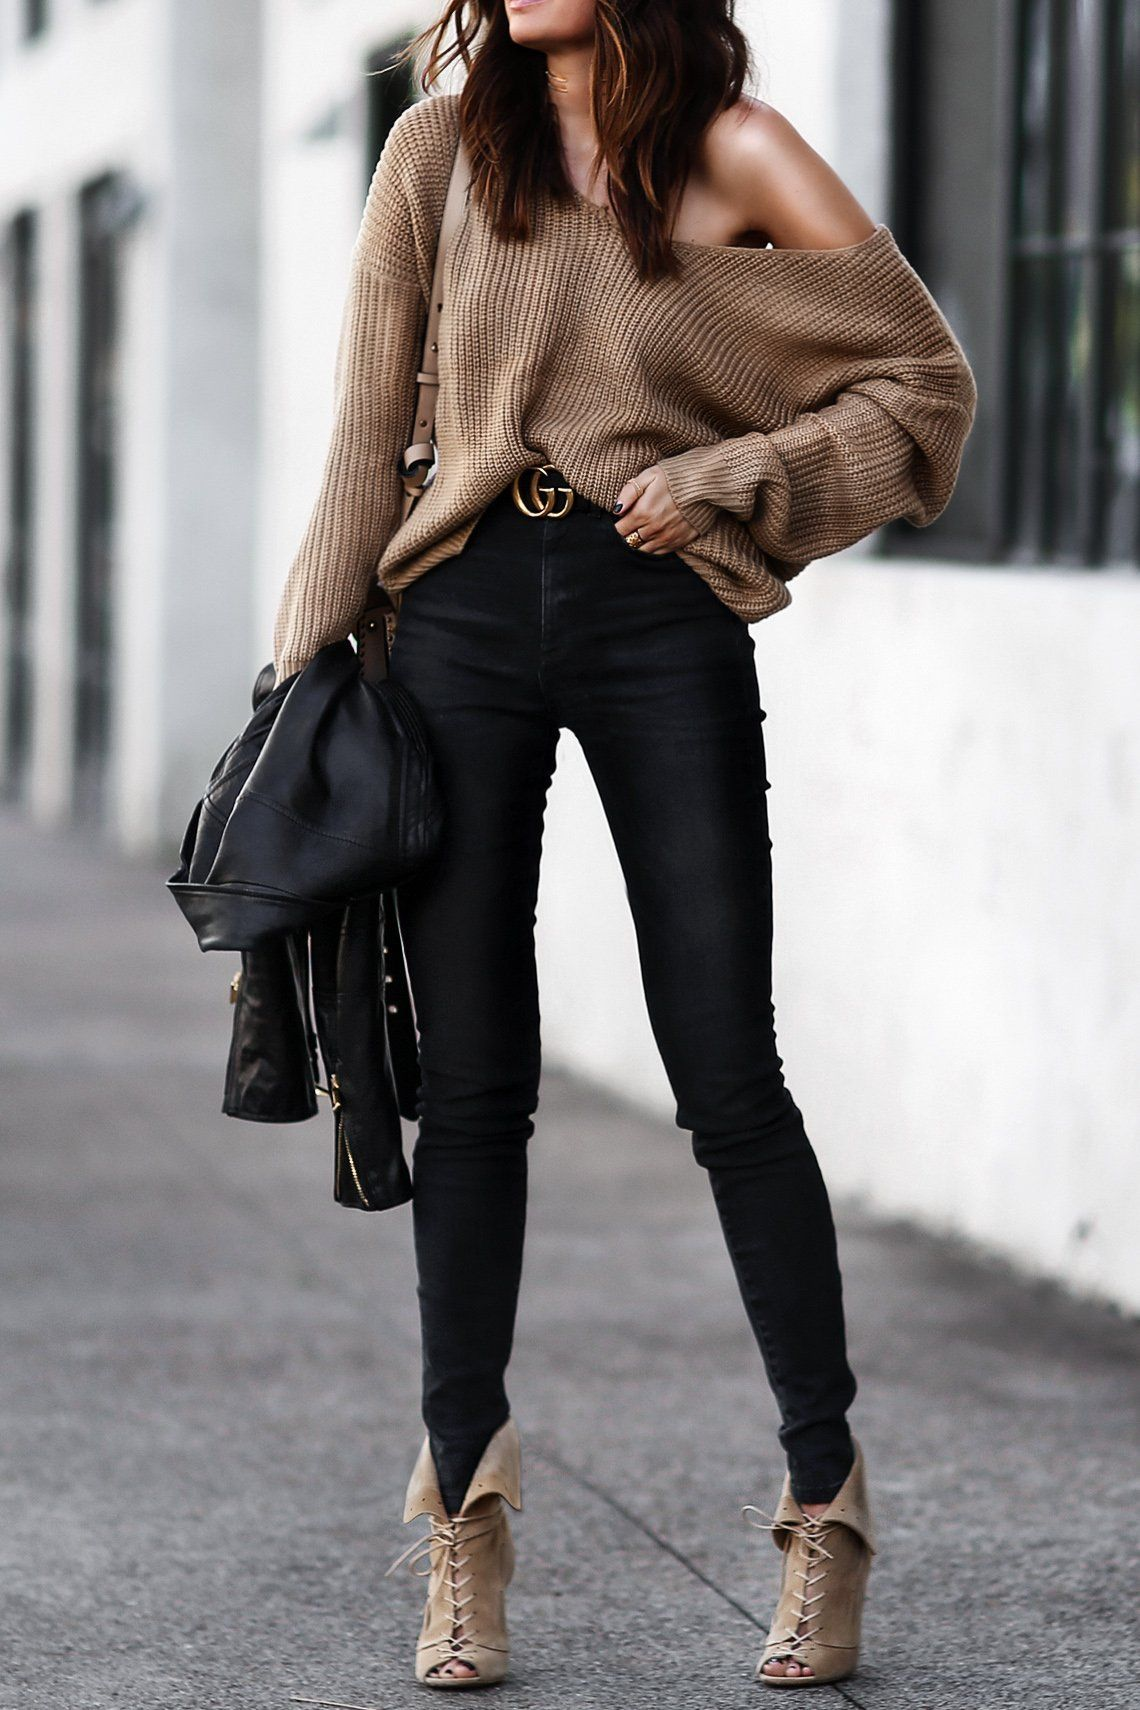 Off The Shoulder And Gucci Belt Outfits Pinterest Mode